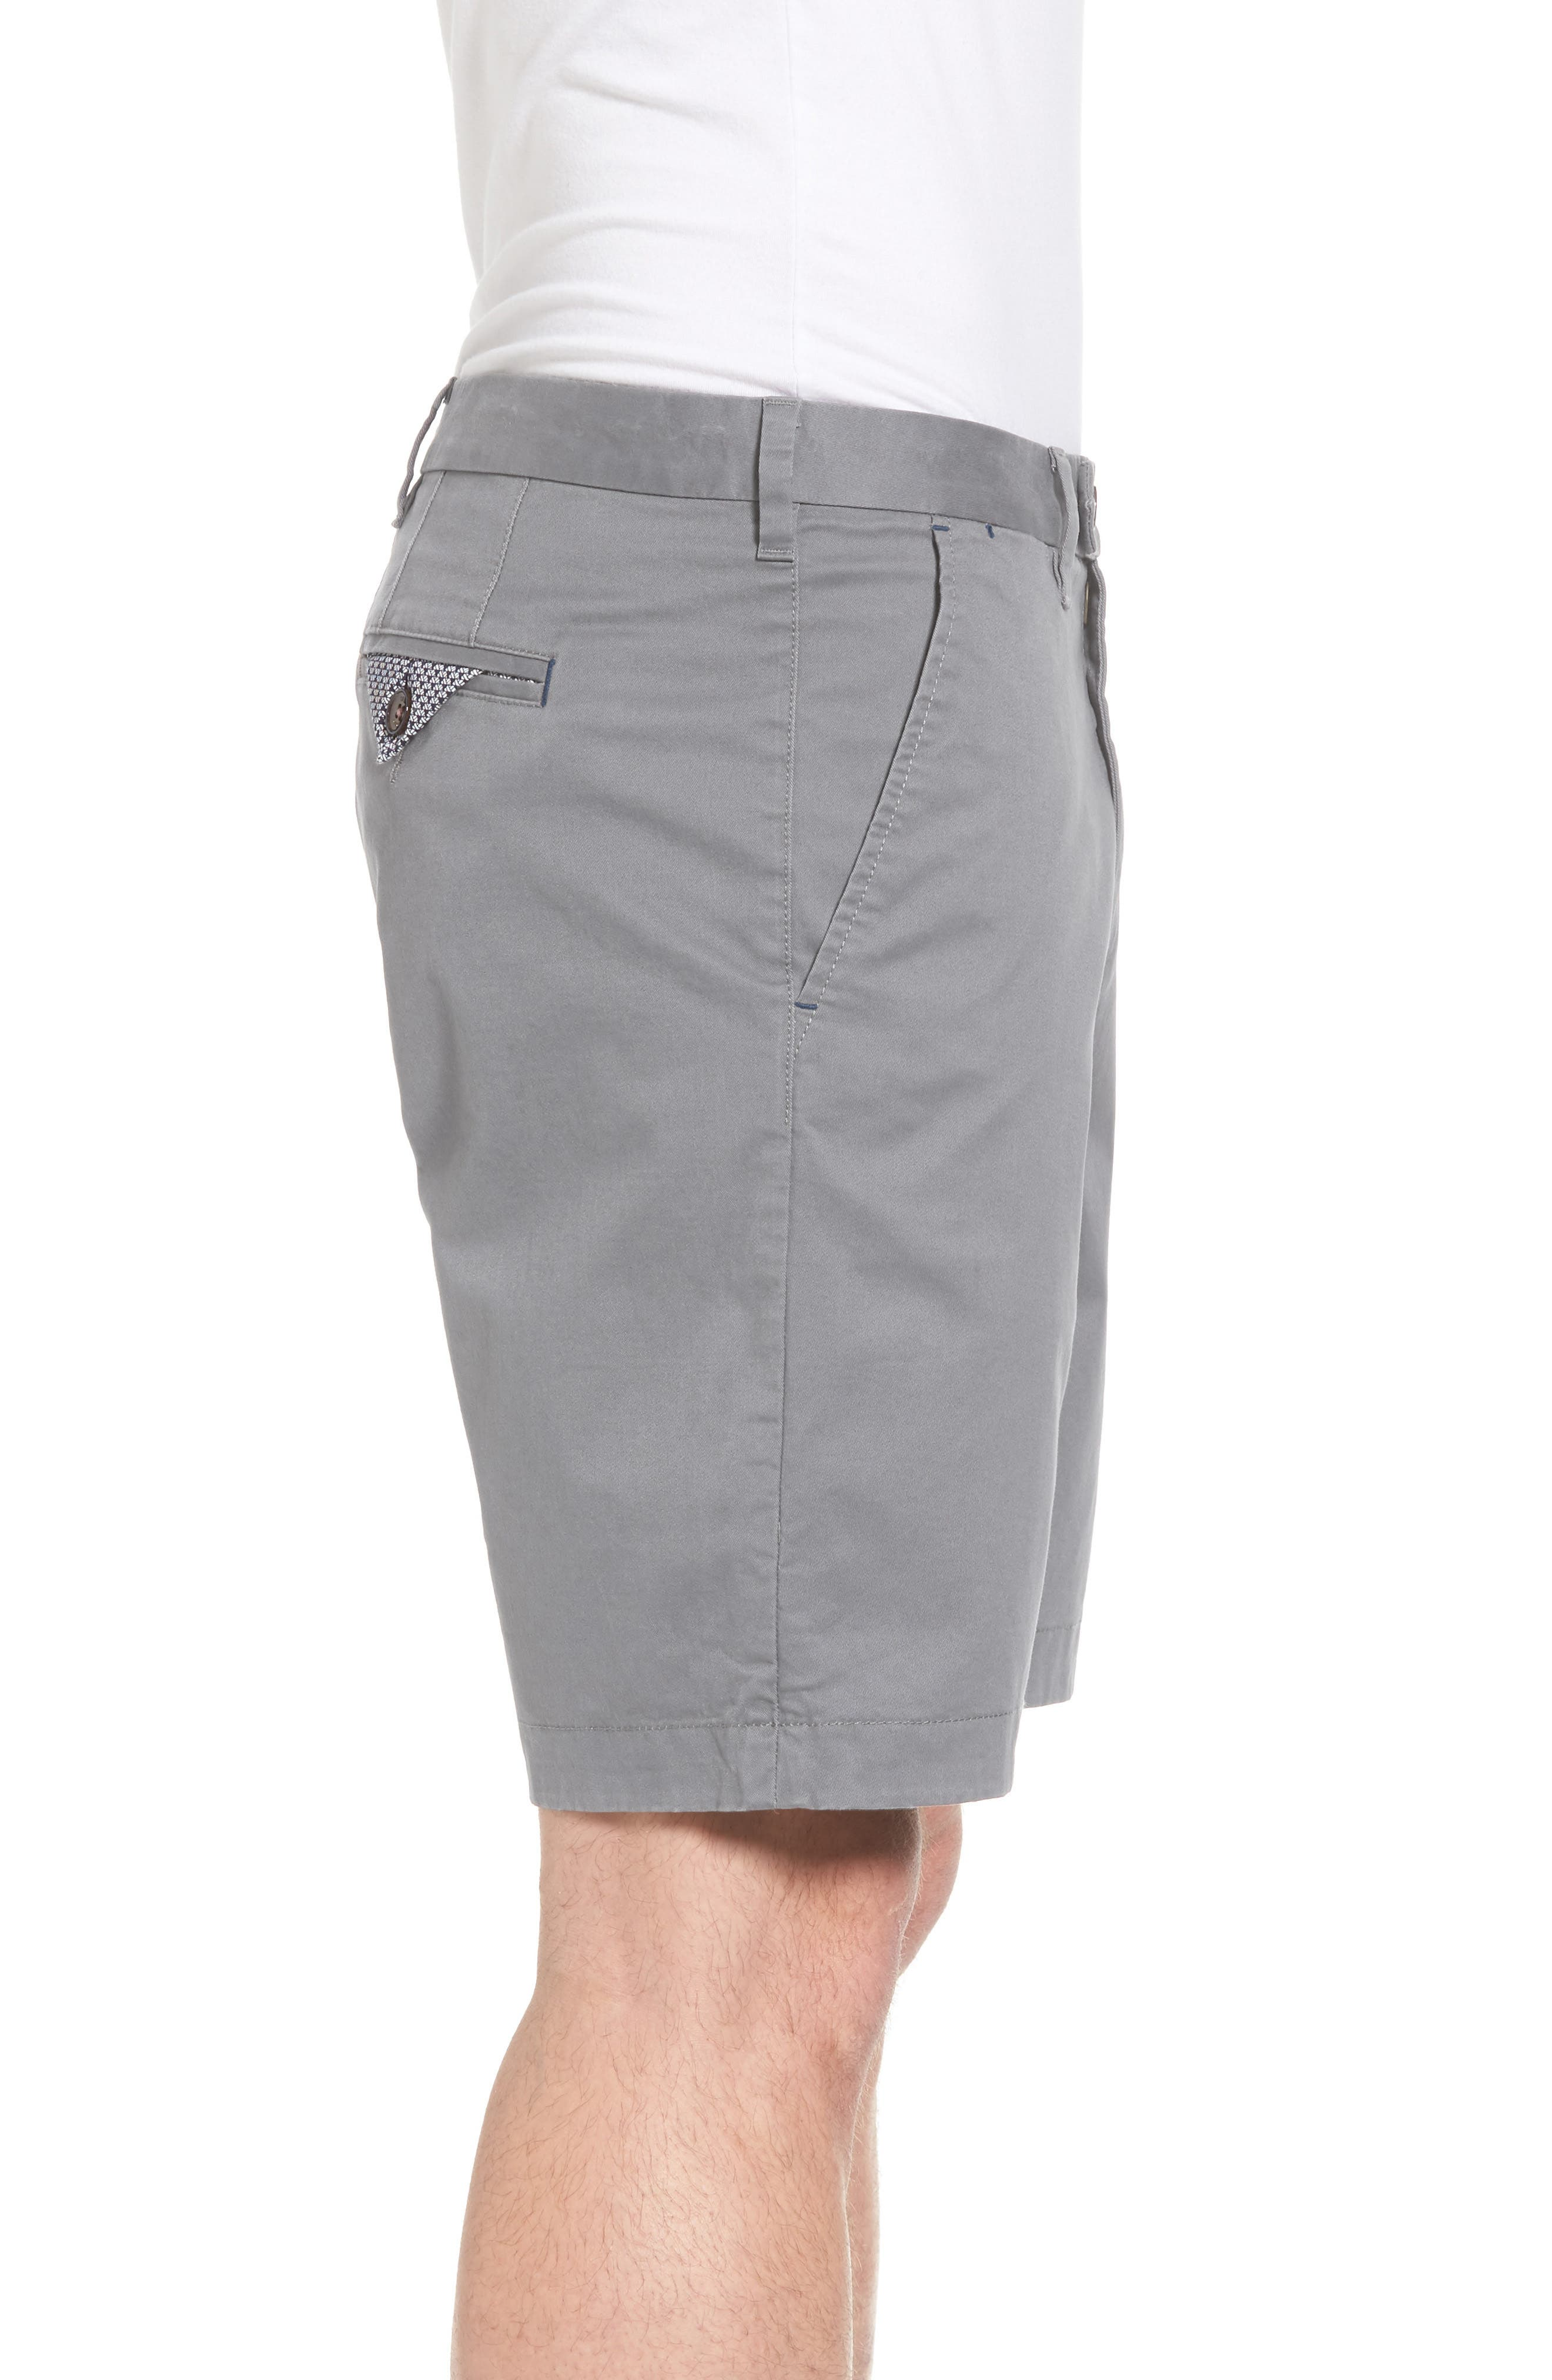 Proshor Slim Fit Chino Shorts,                             Alternate thumbnail 3, color,                             050